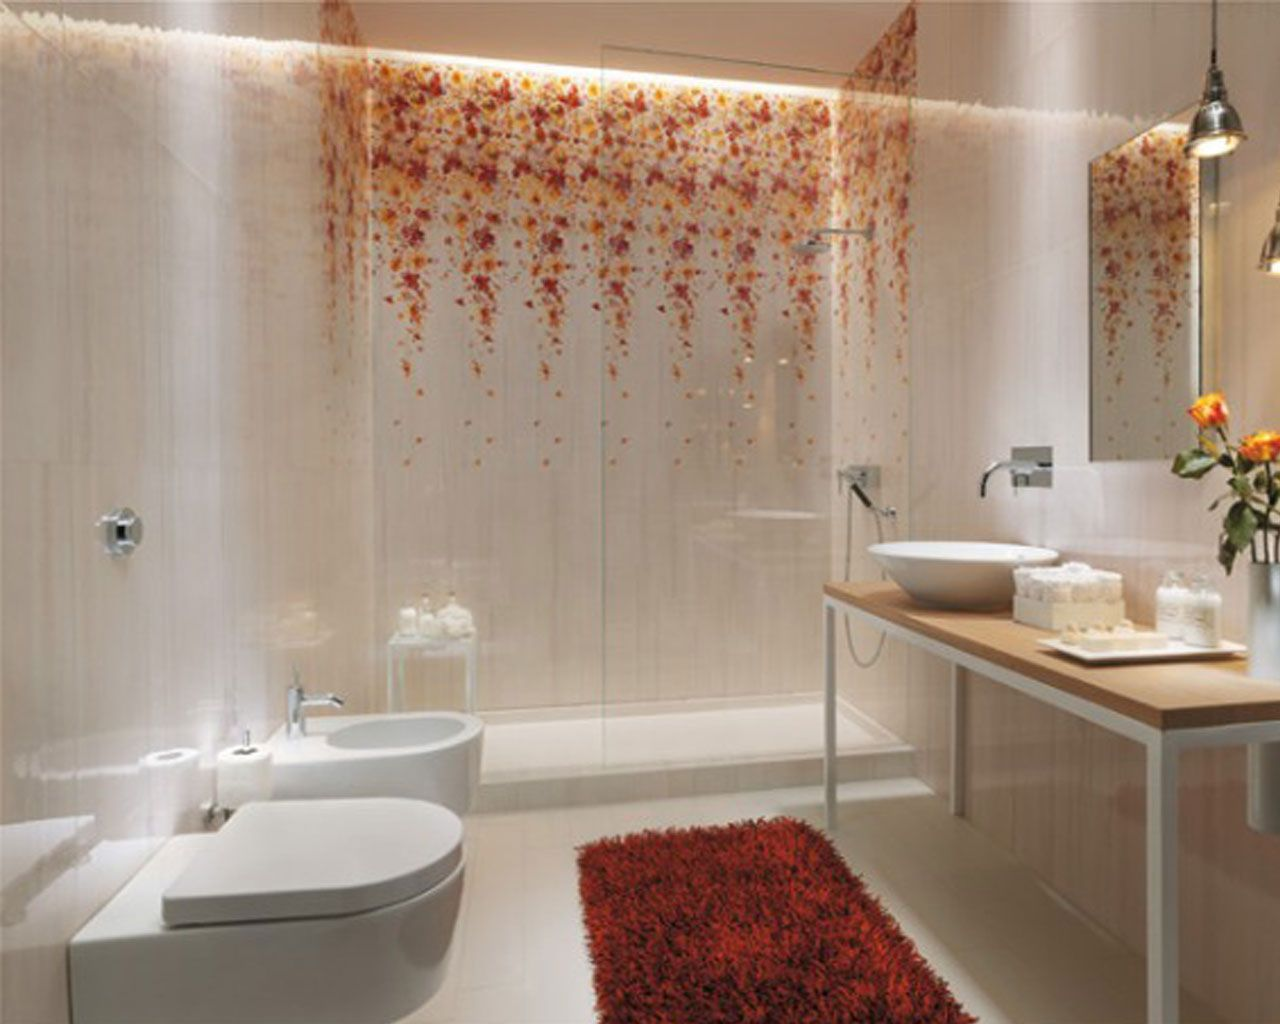 25 bathroom design ideas with images - Bathroom Designs Adelaide